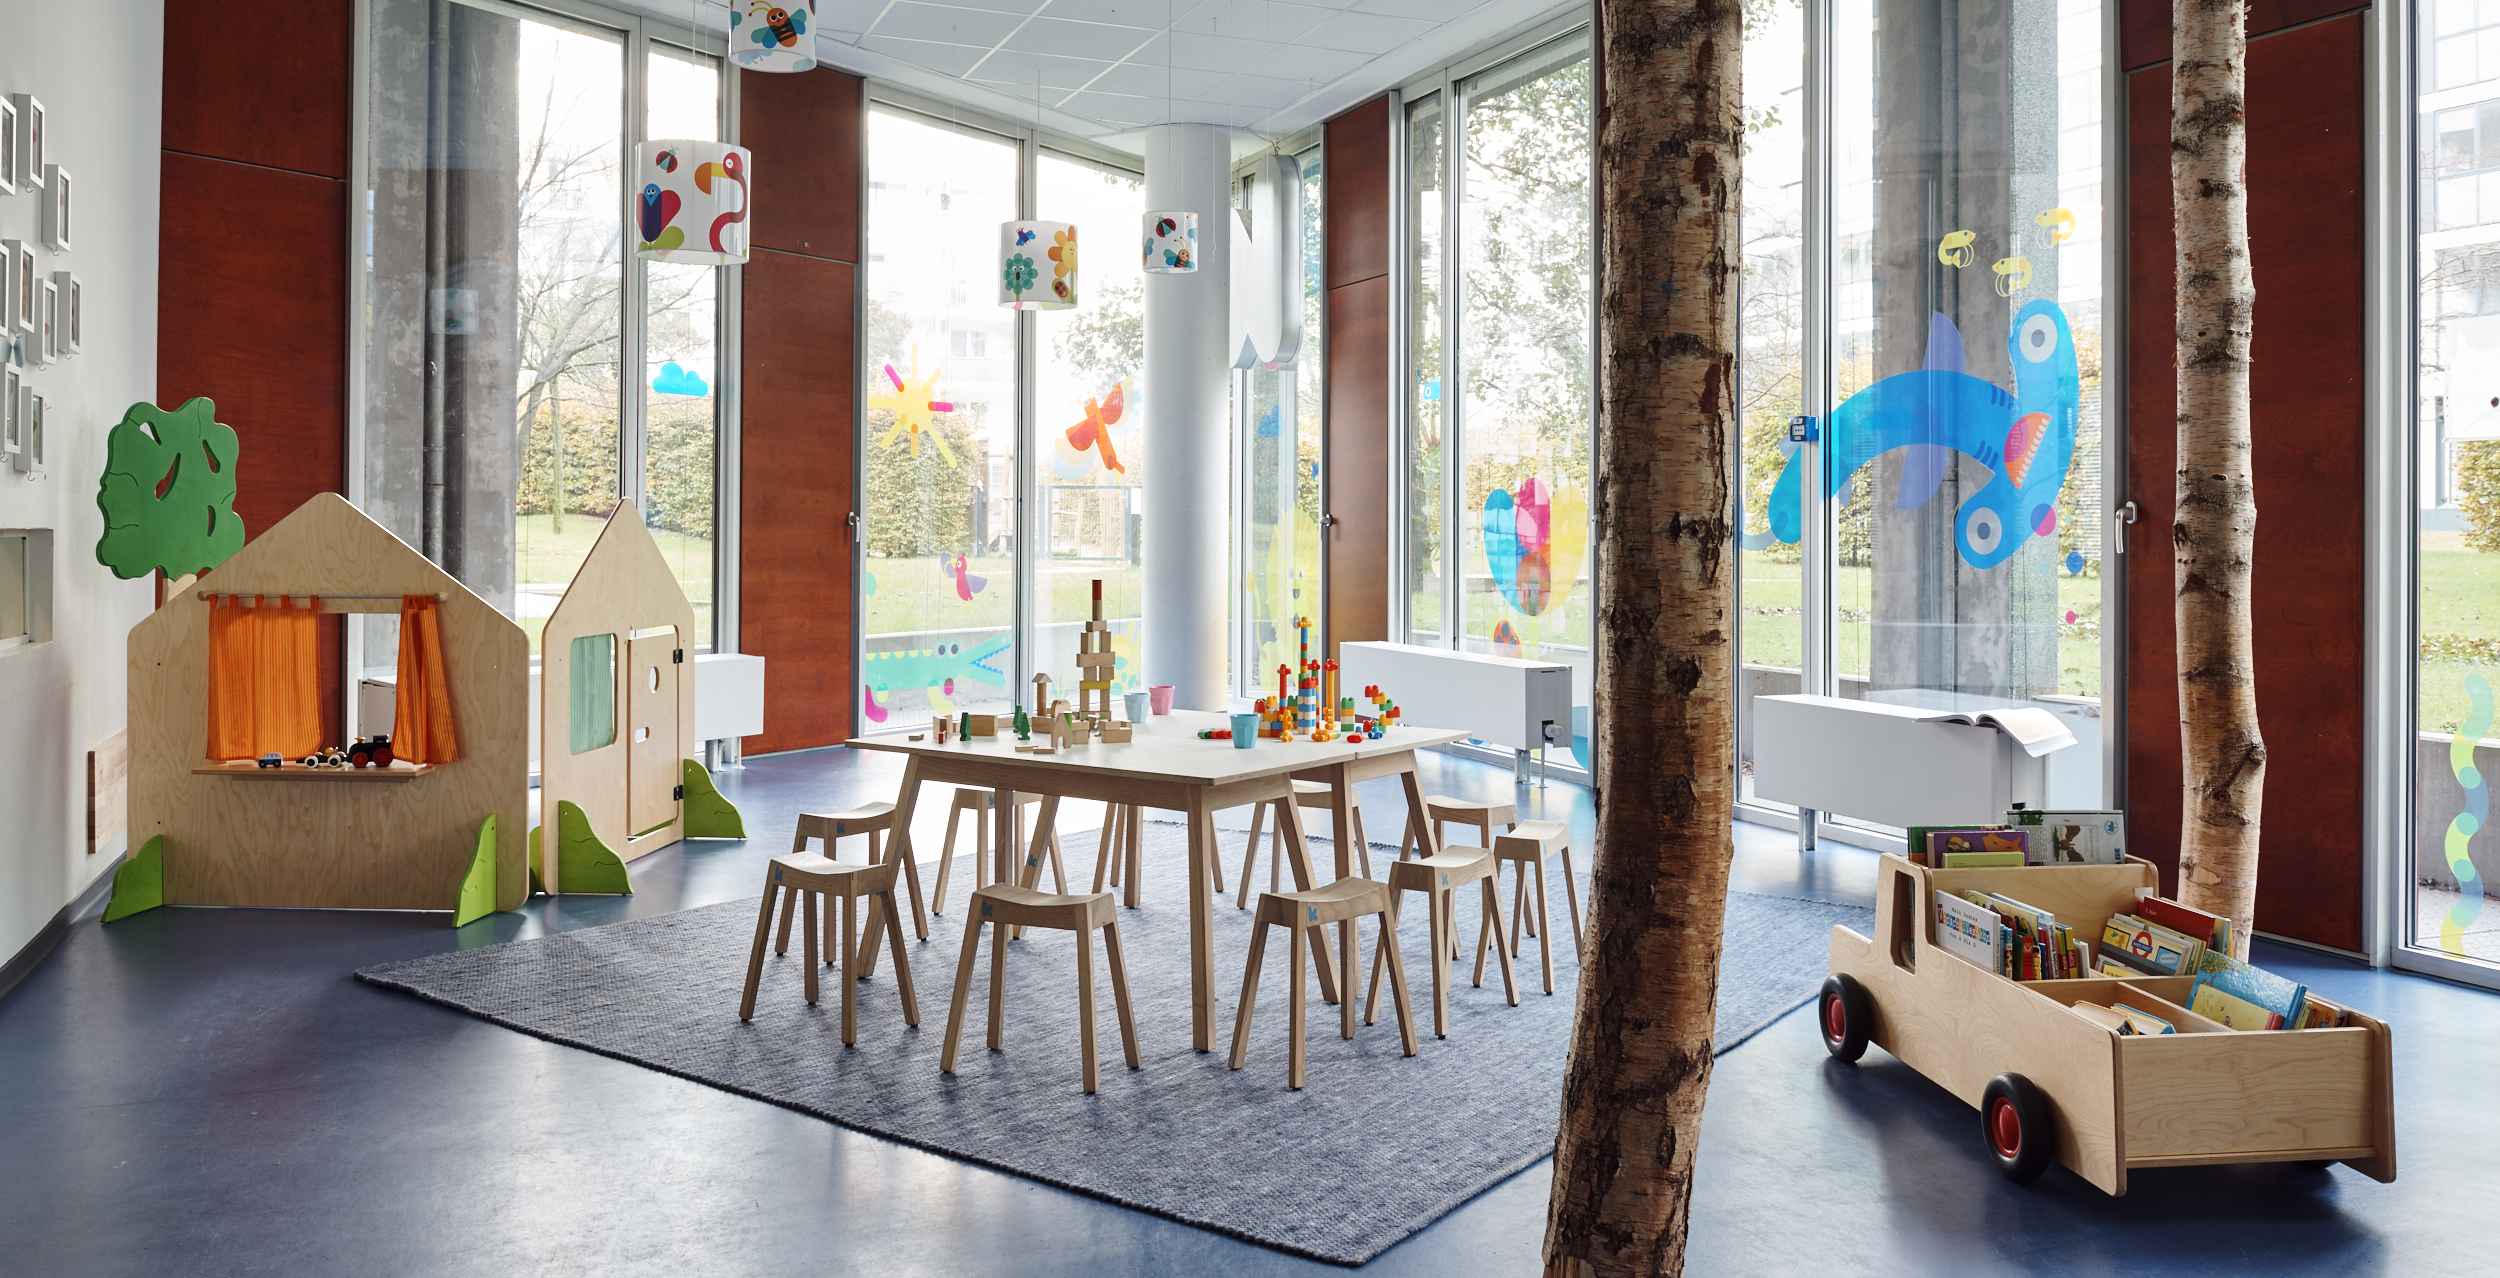 KiTa Kinderzimmer City Süd Private Kindergärten, Hamburg